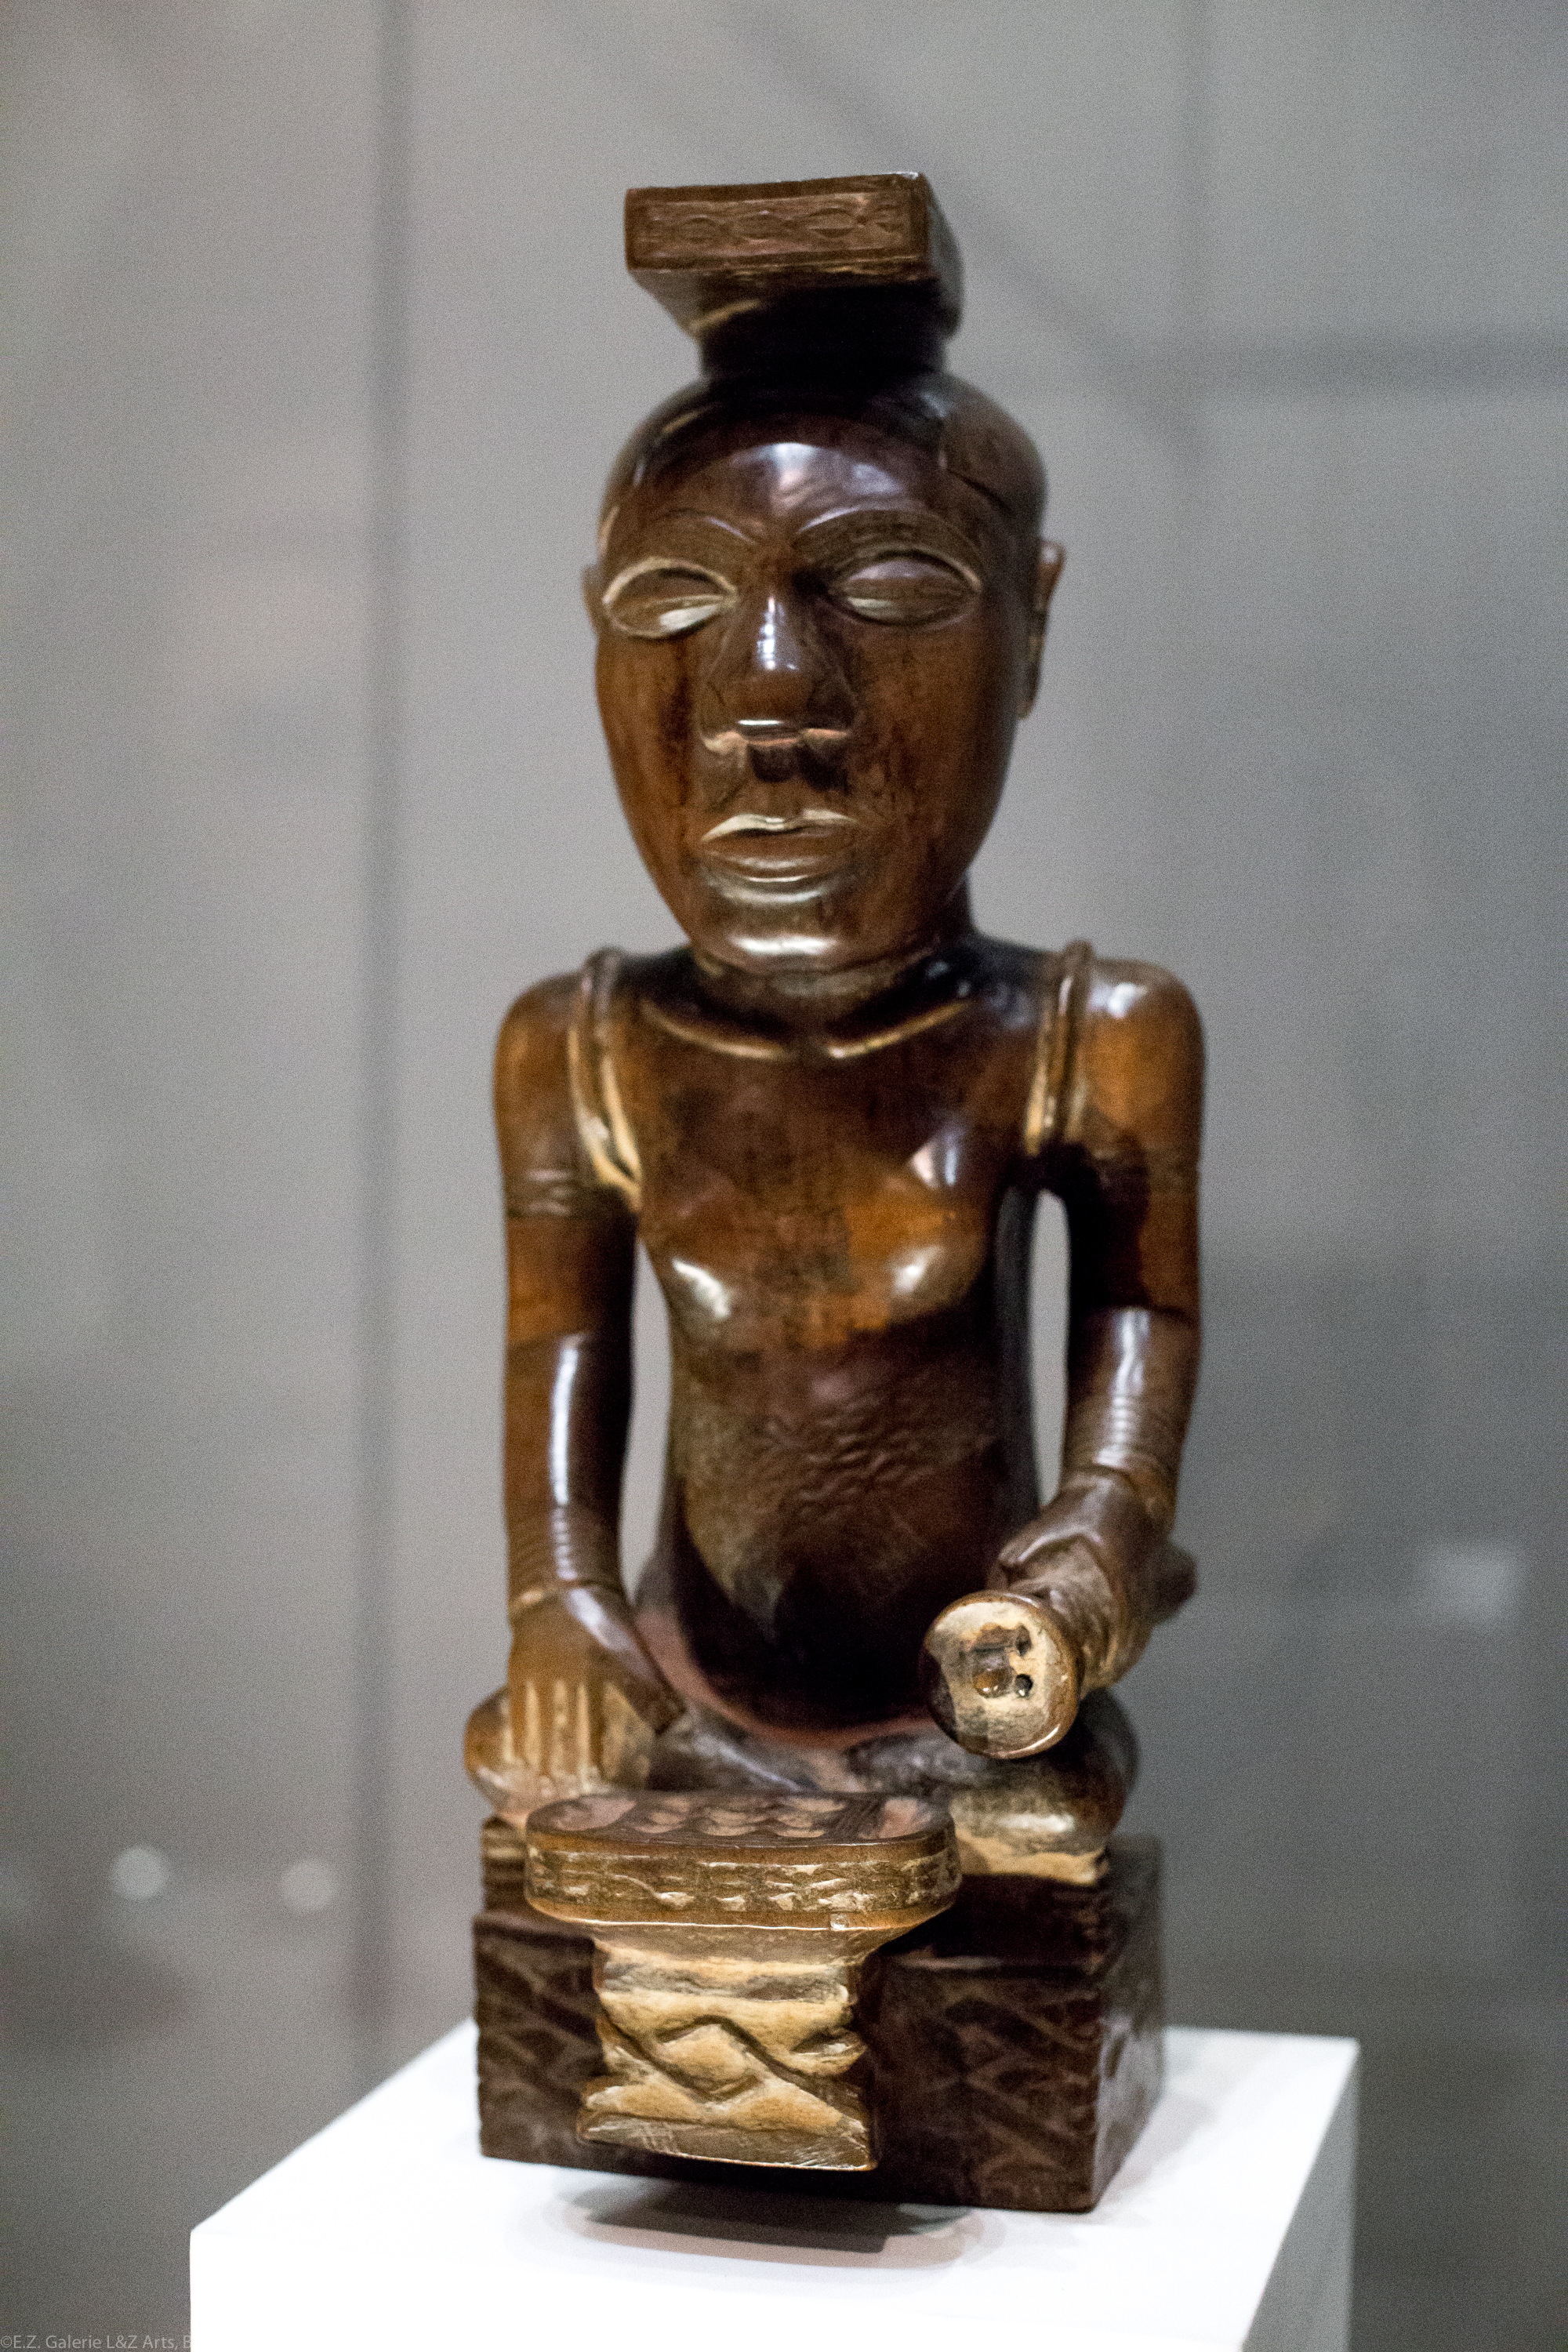 art-tribal-africain-londres-british-museum-sainsbury-galleries-bronze-benin-statue-masque-ivoire-africa-london-bini-edo-galerie-lz-arts-belgique-france-20.jpg